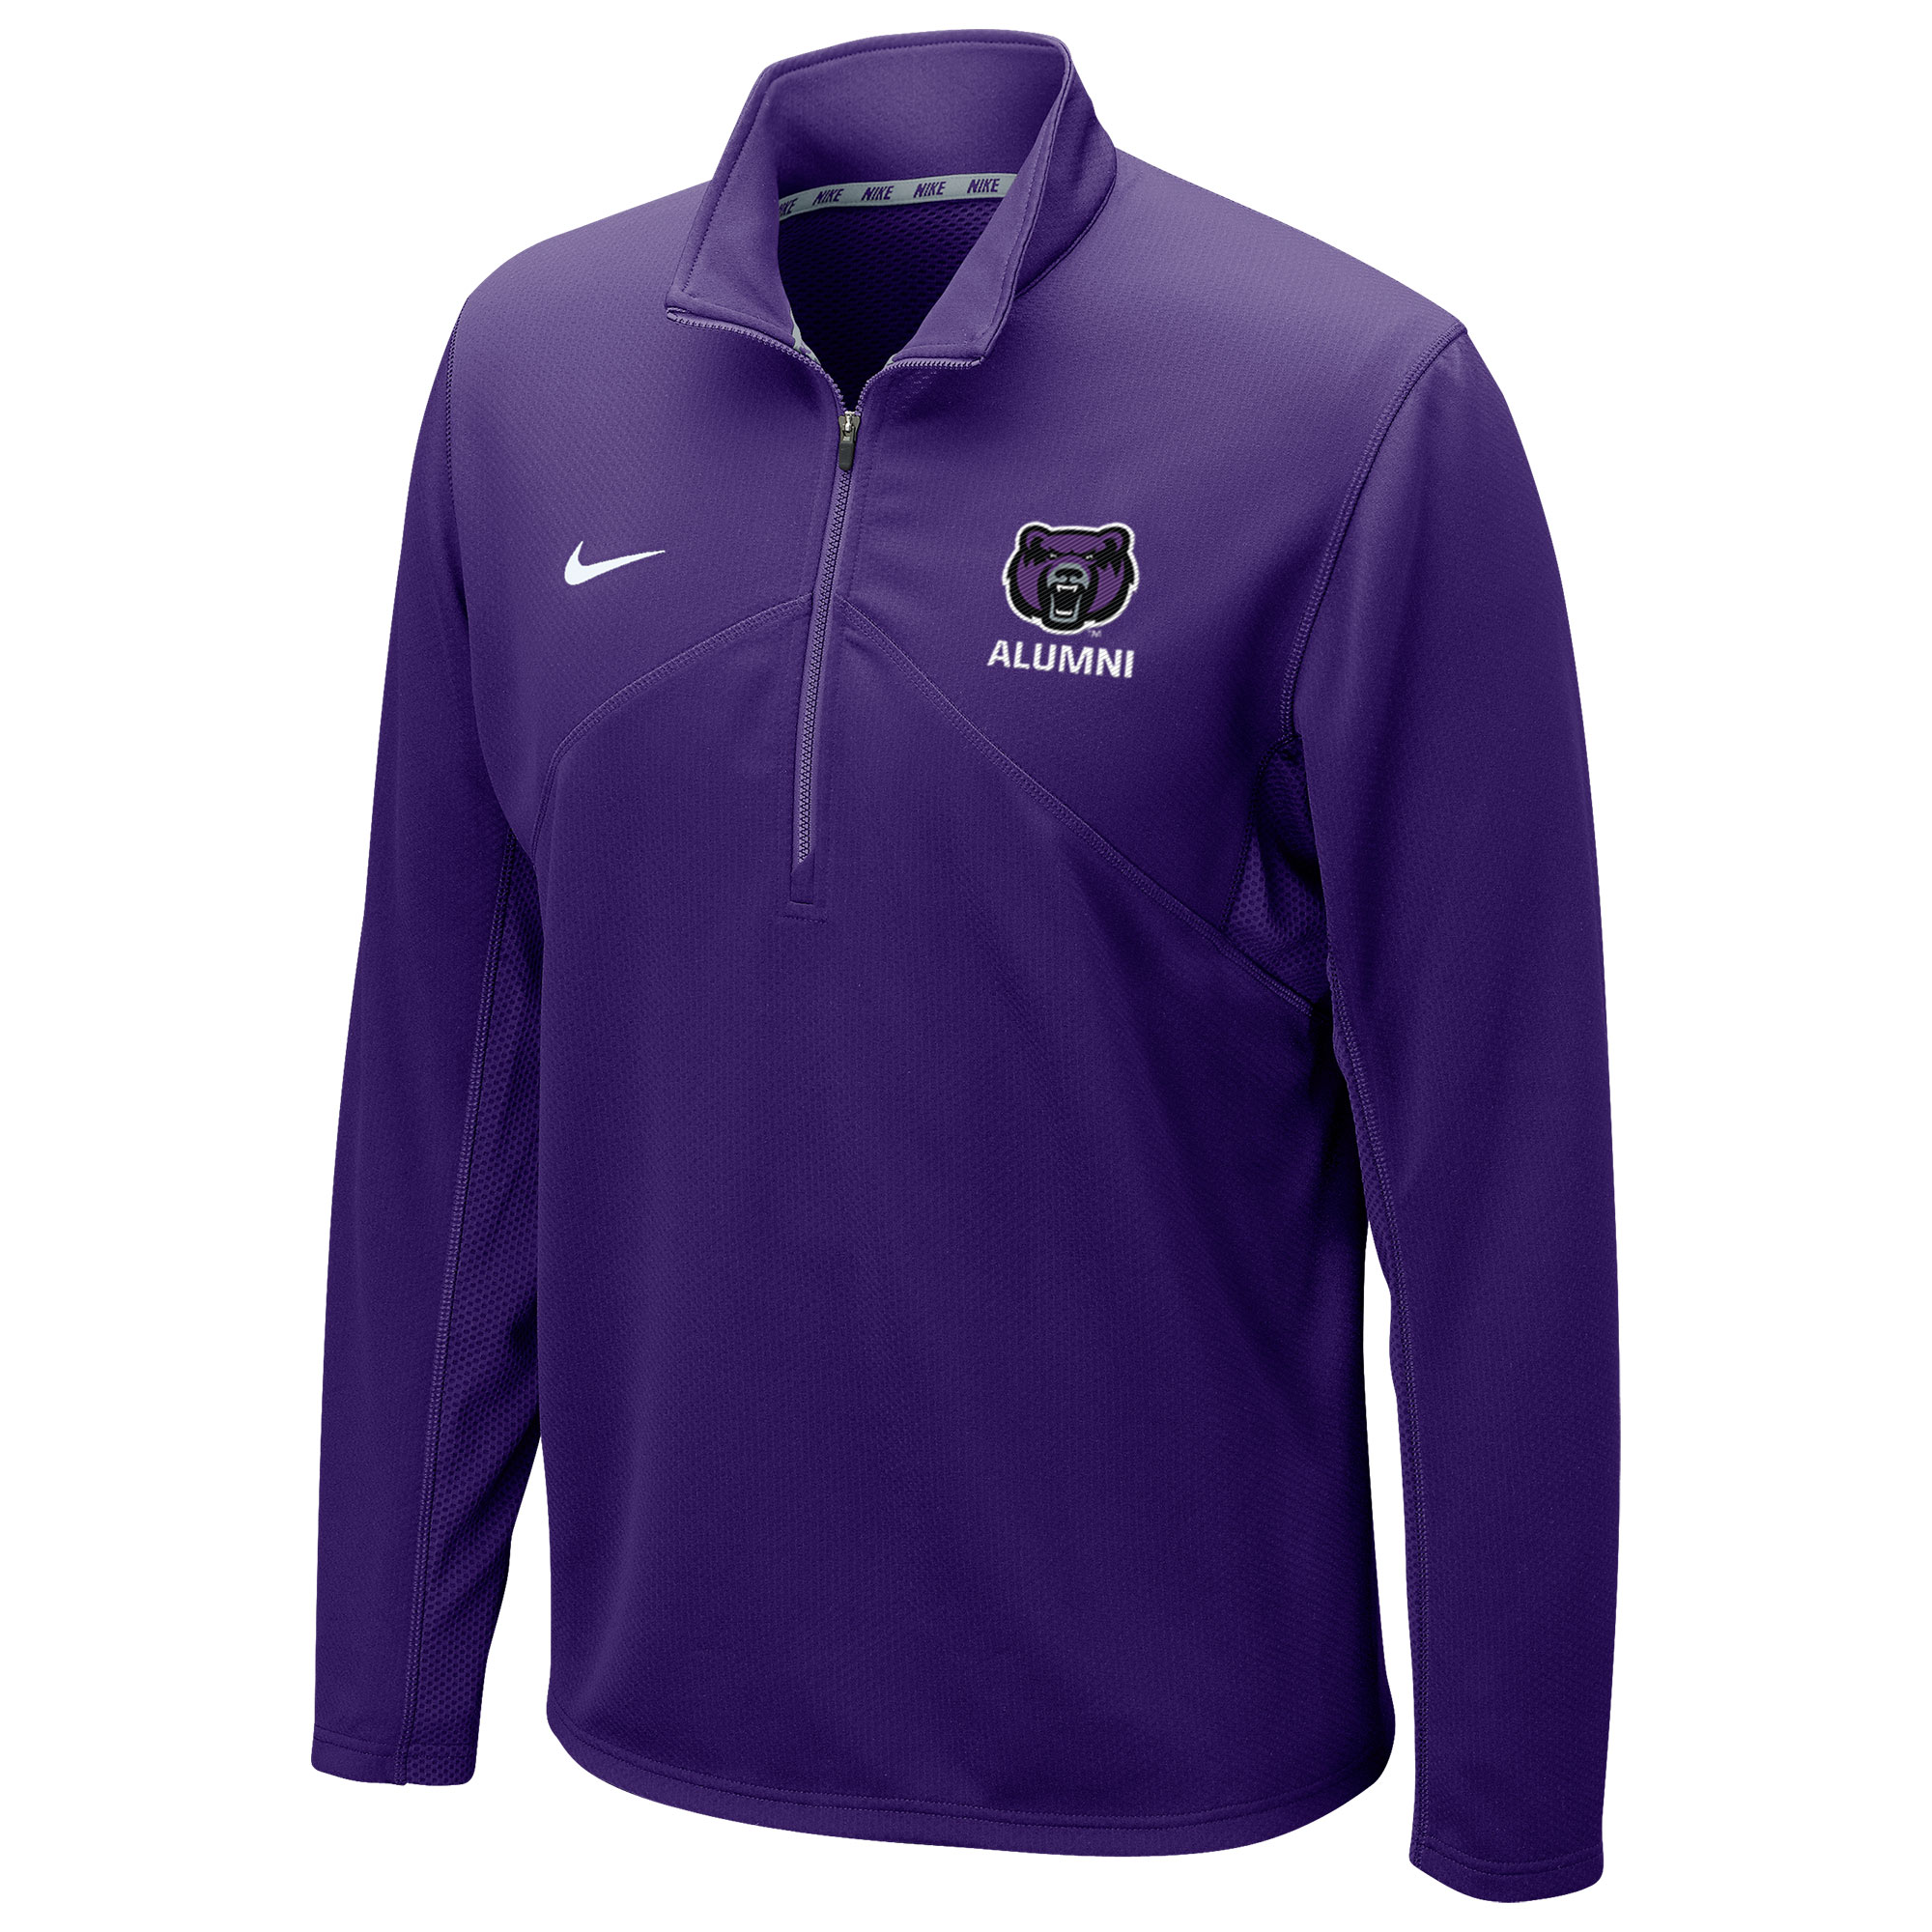 Alumni DriFIT Training 1/4 Zip